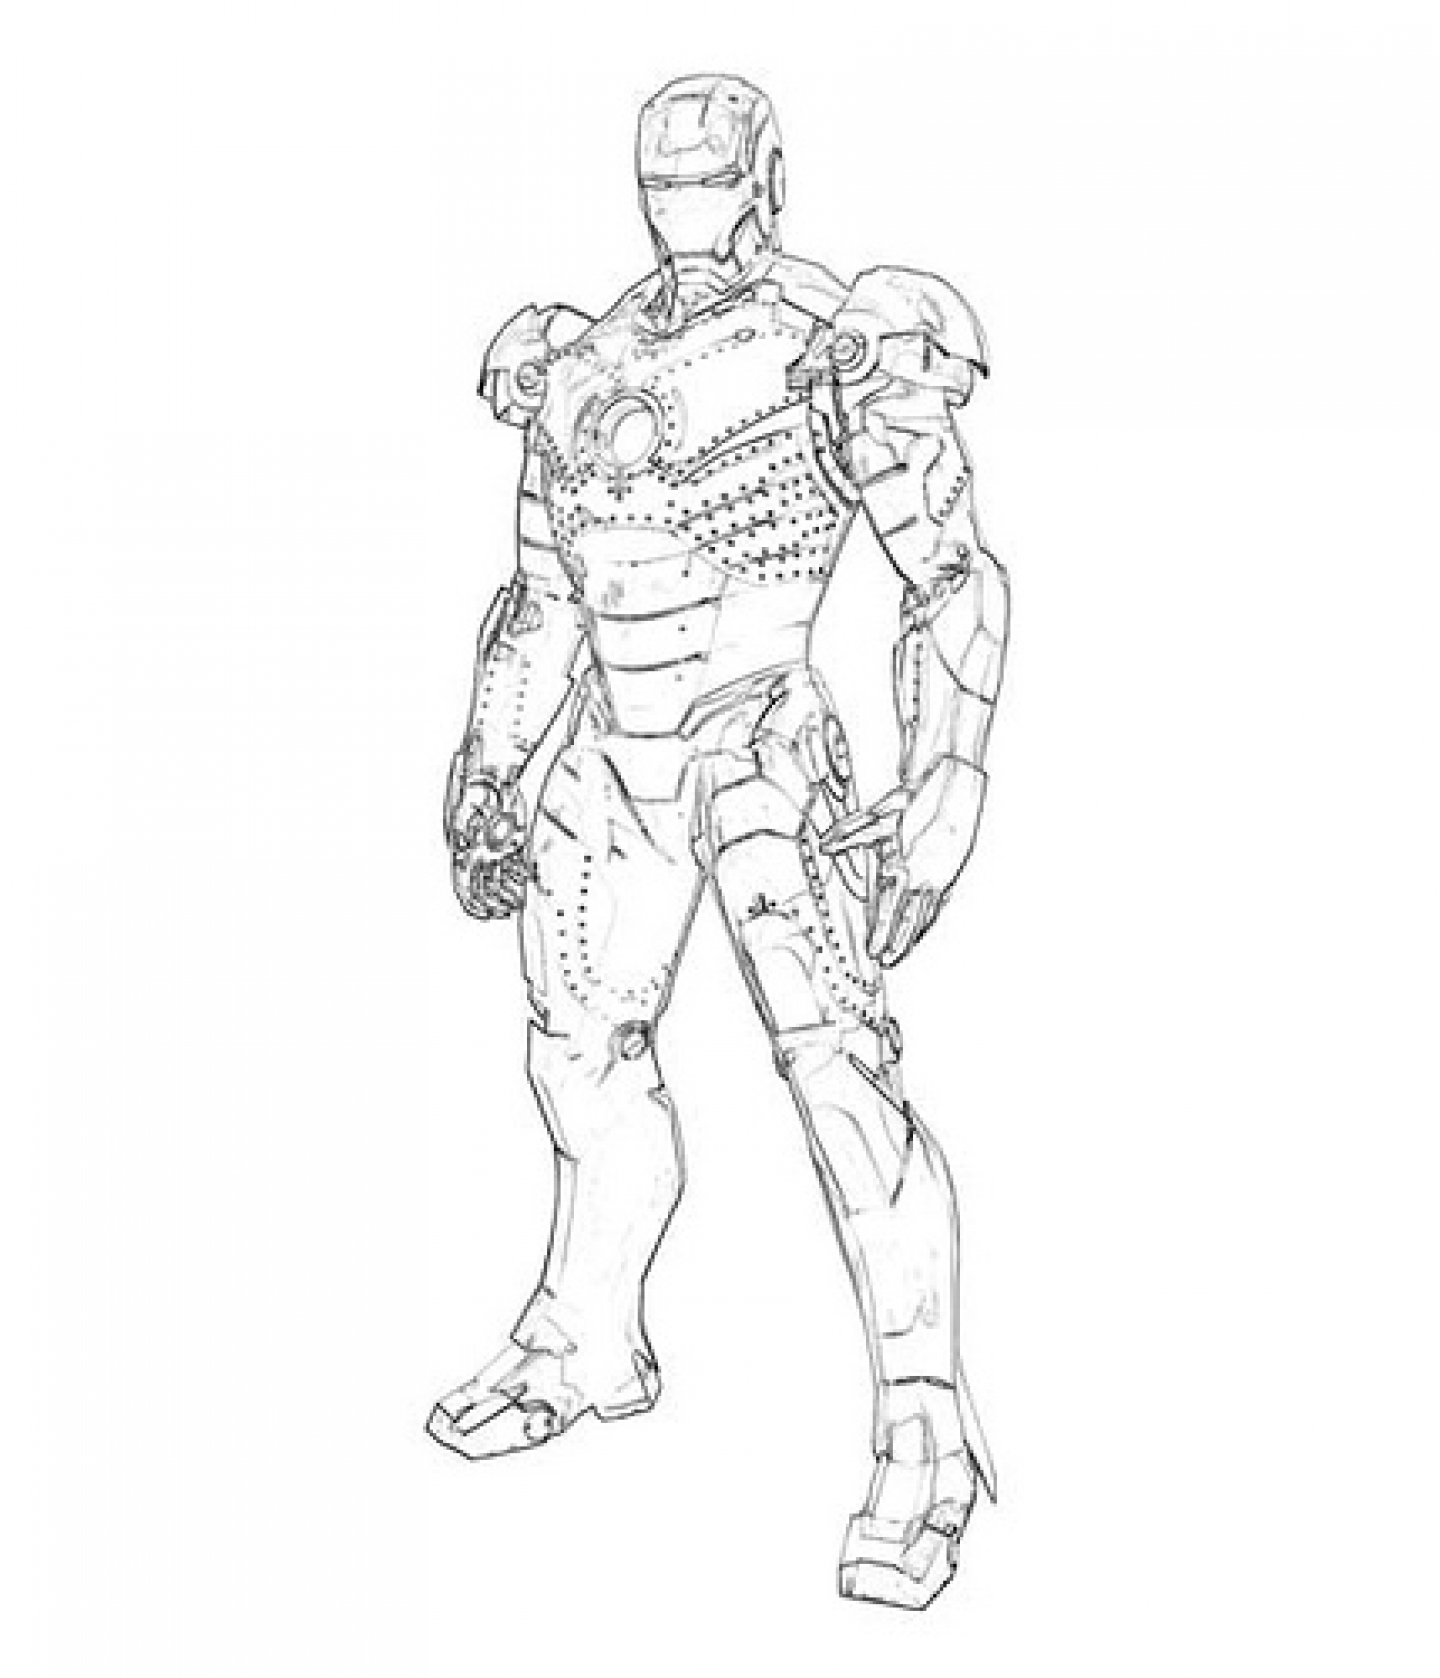 iron man printable images printable ironman coloring pages enjoy coloring iron man printable images